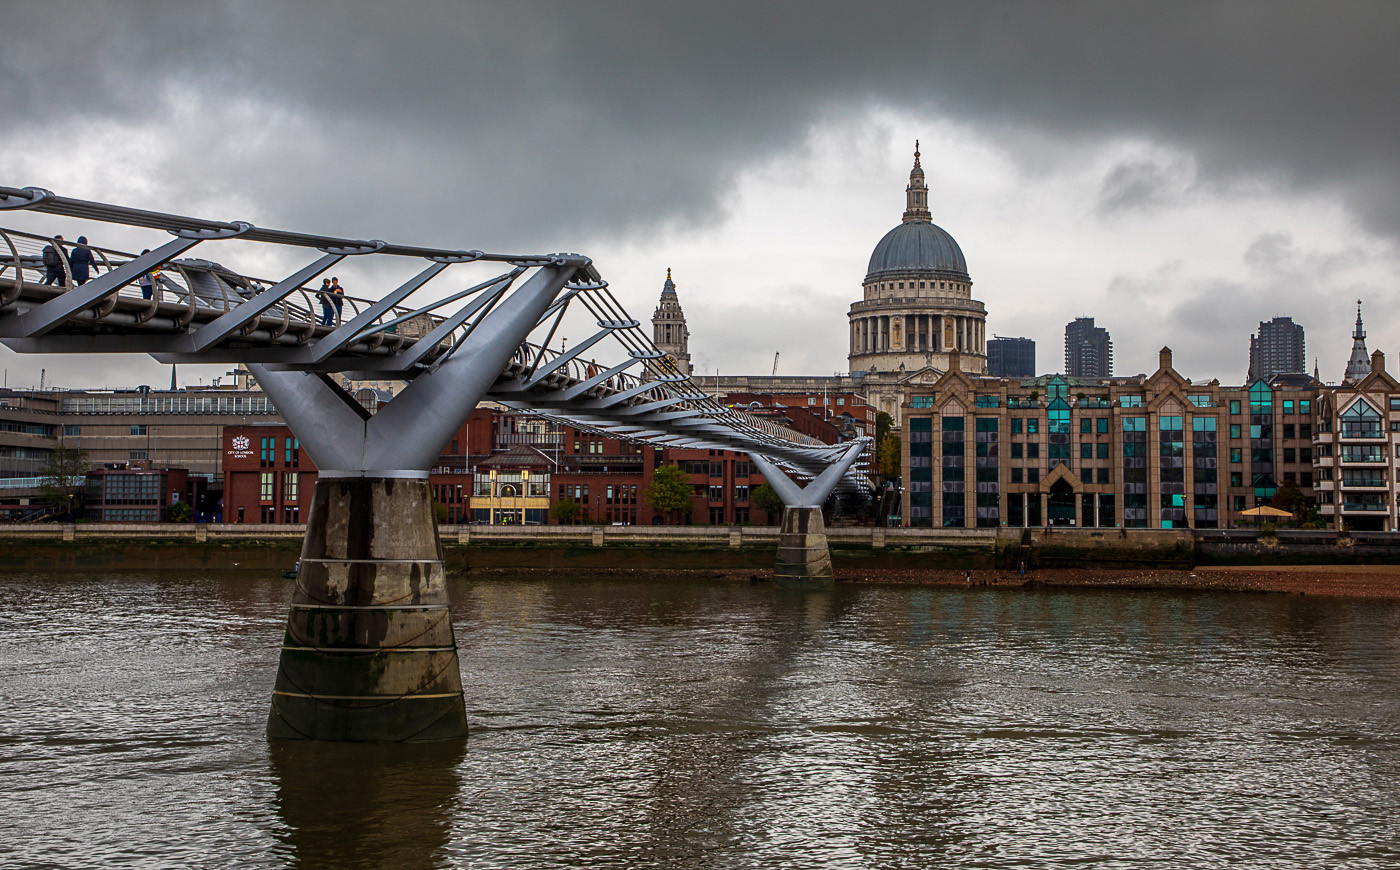 18 A GREY DAY OVER ST PAUL'S by Philip Easom